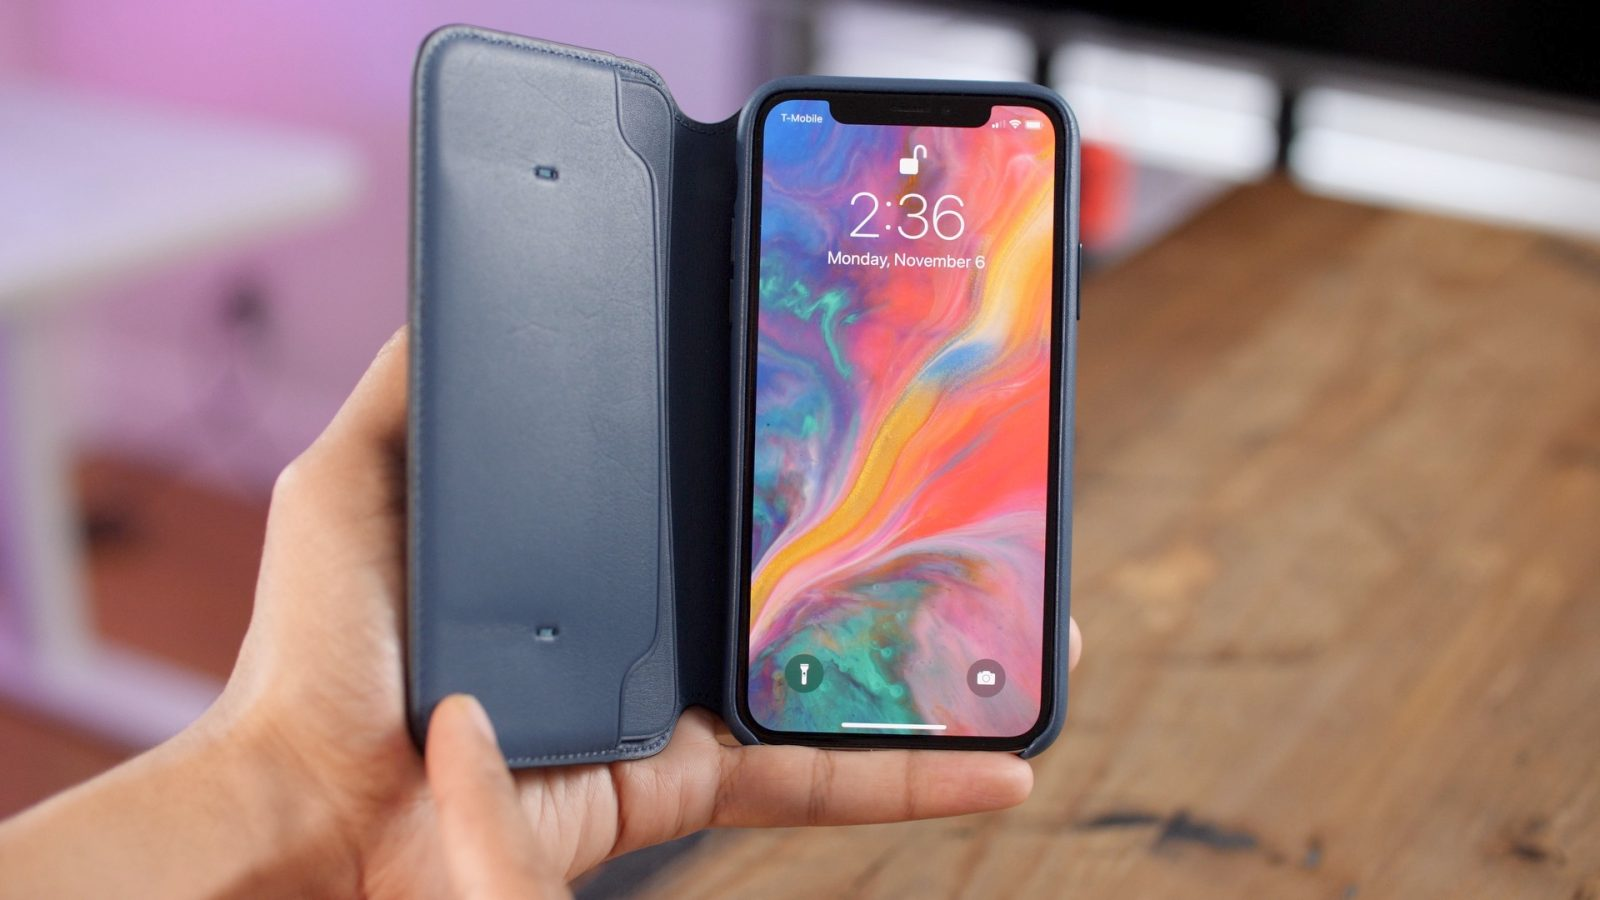 Apple's big holiday quarter & iPhone X expected to push it past Samsung in smartphone market share